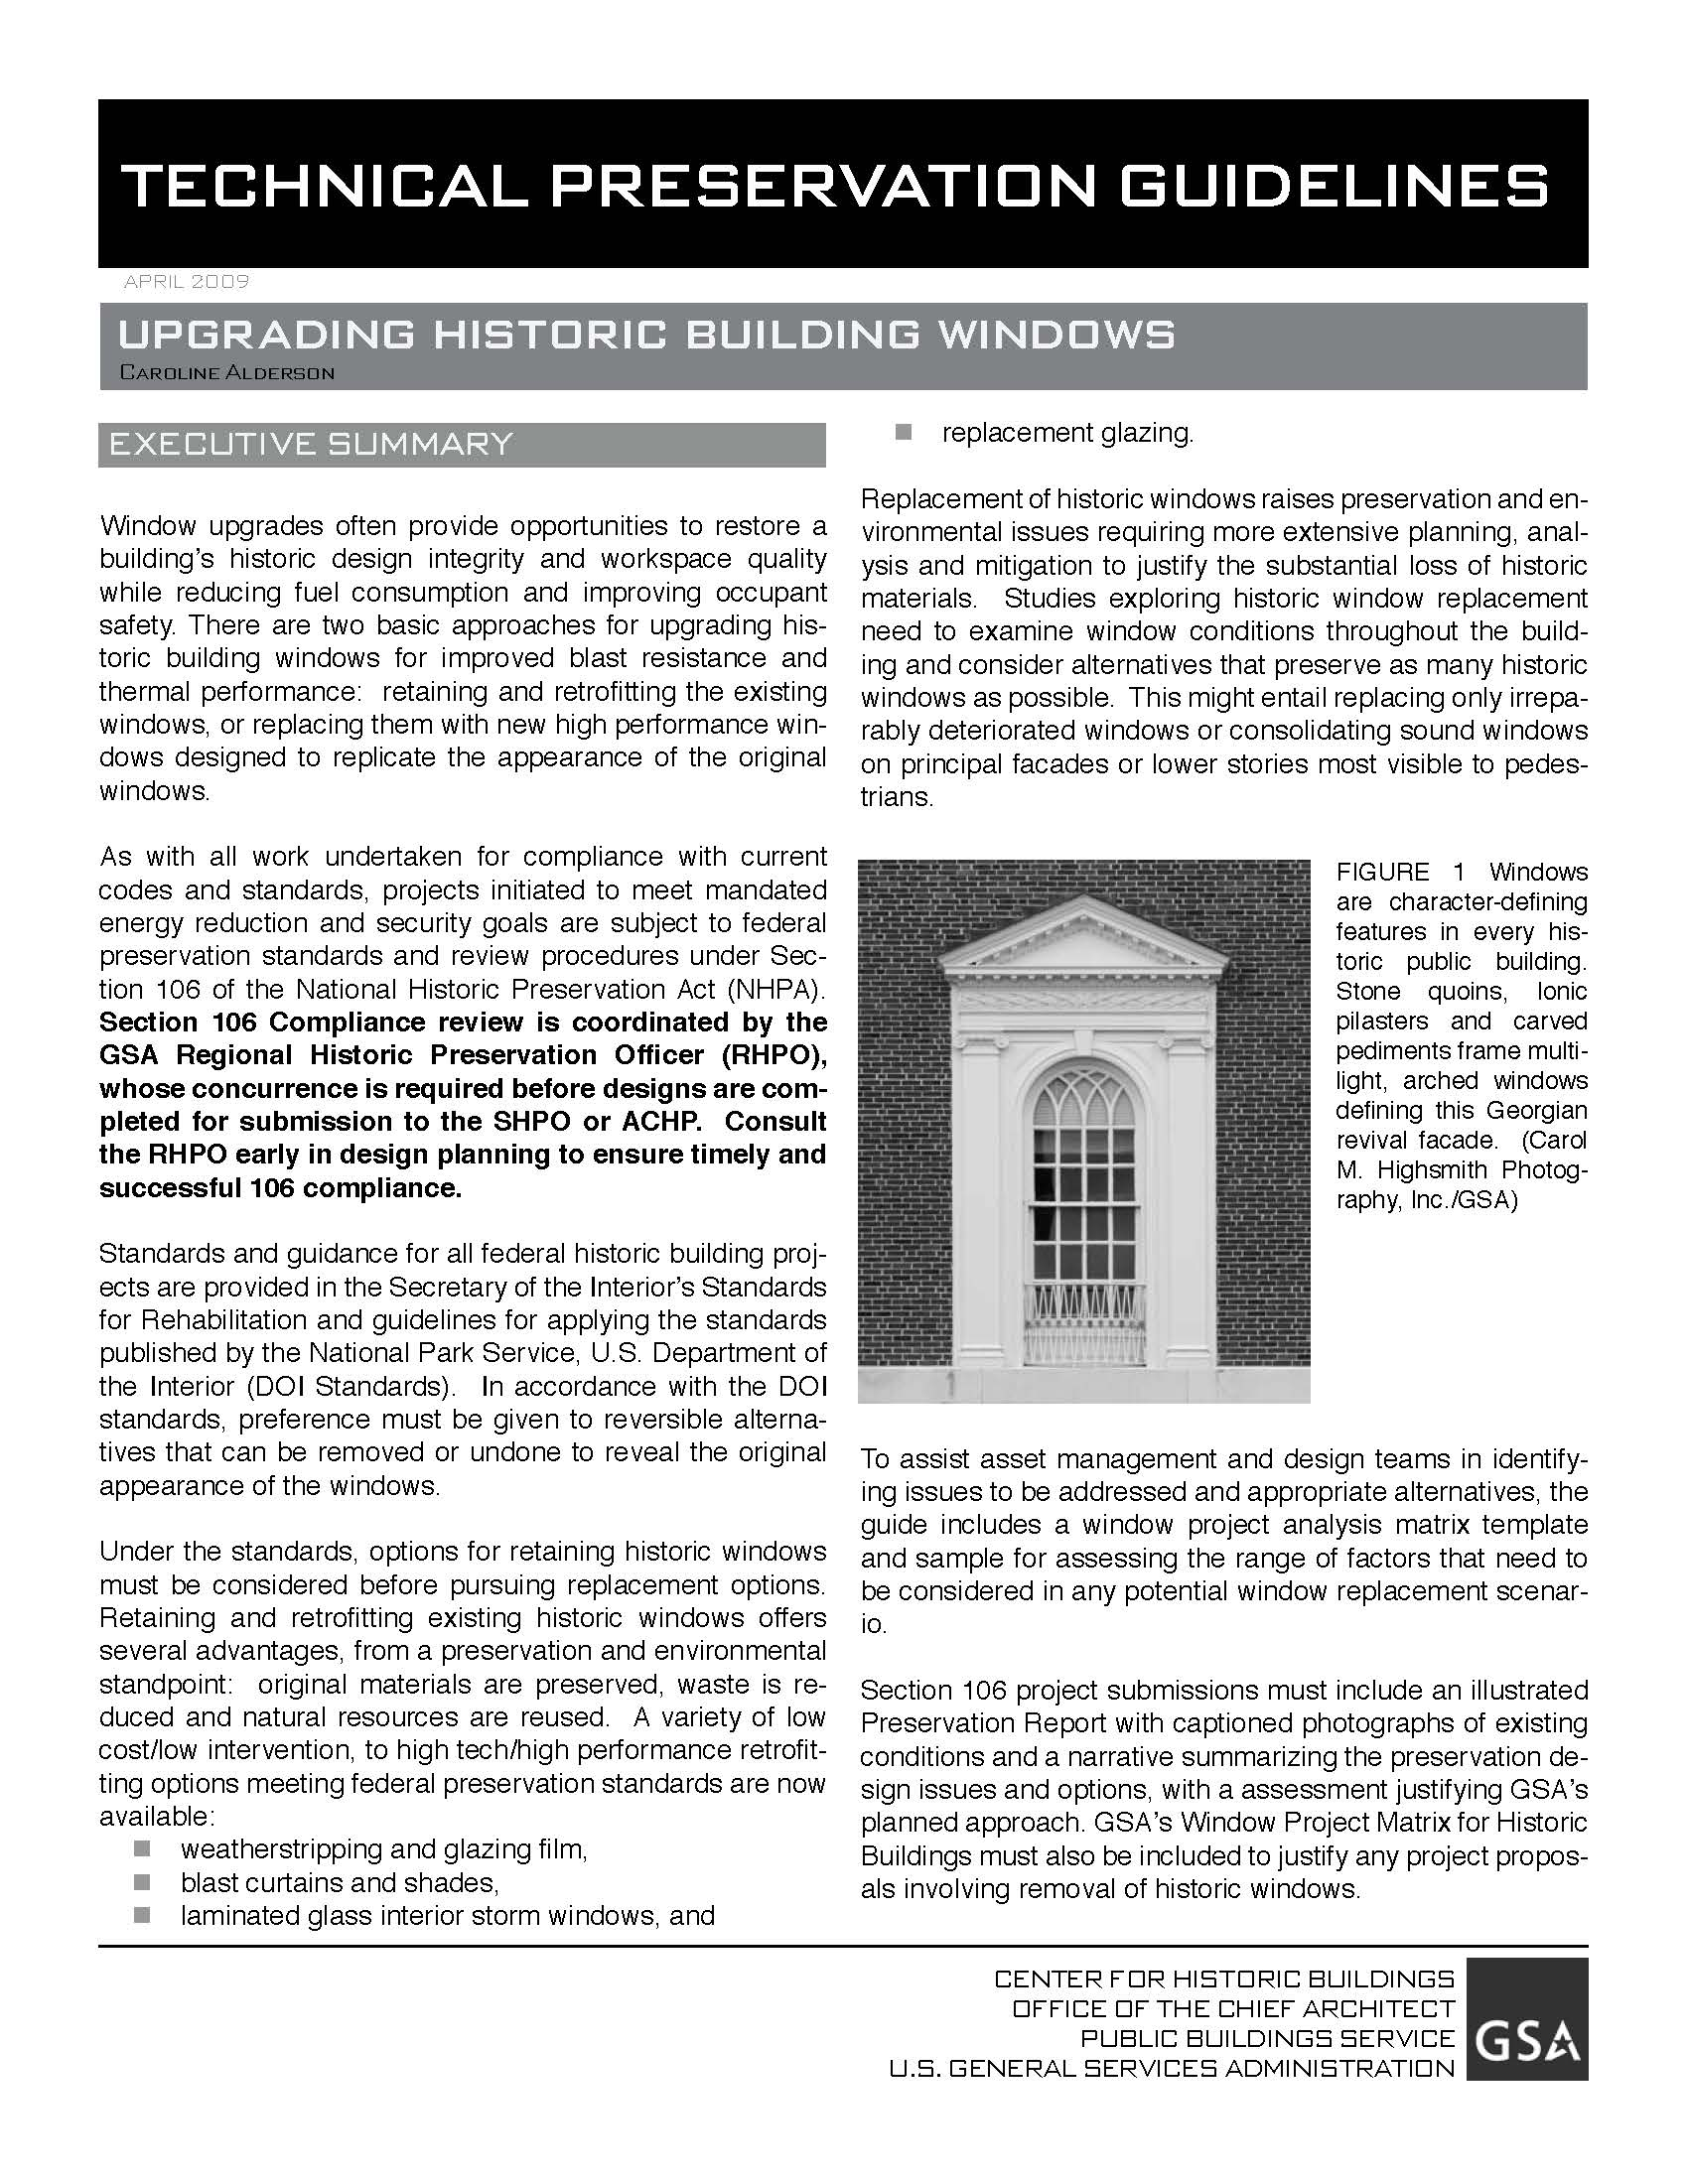 GSA Technical Windows